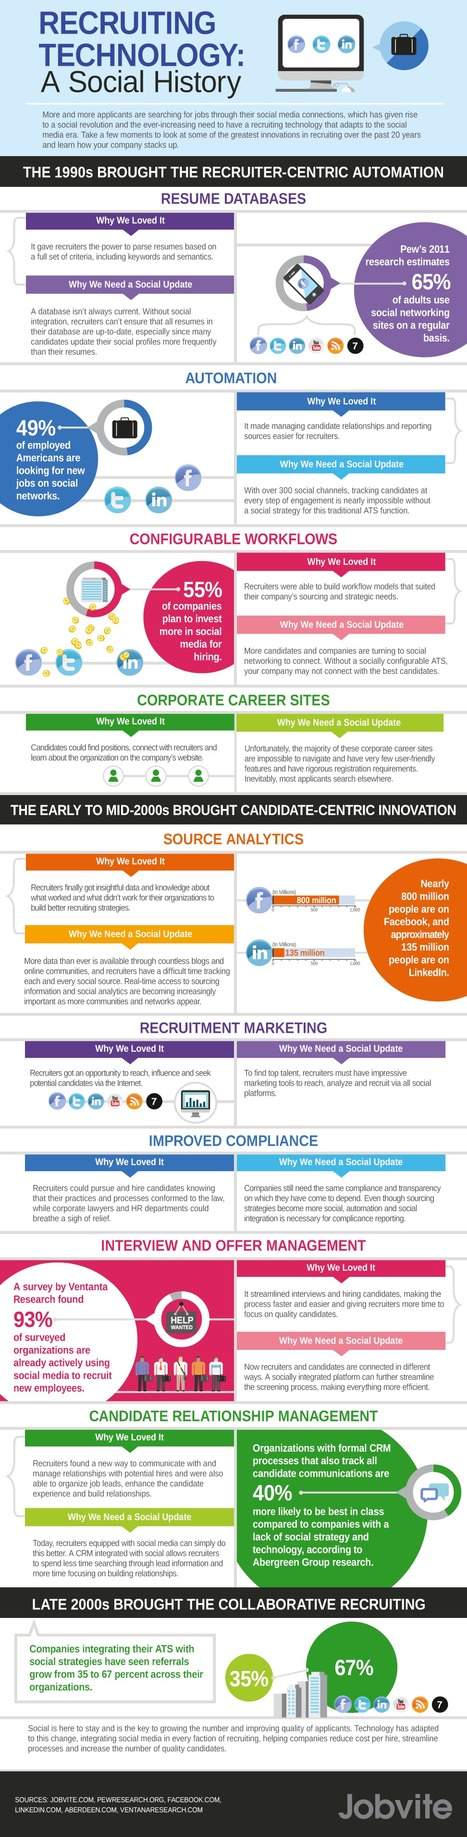 The History of Social Recruiting Technology [INFOGRAPHIC]   Talent Communities   Scoop.it